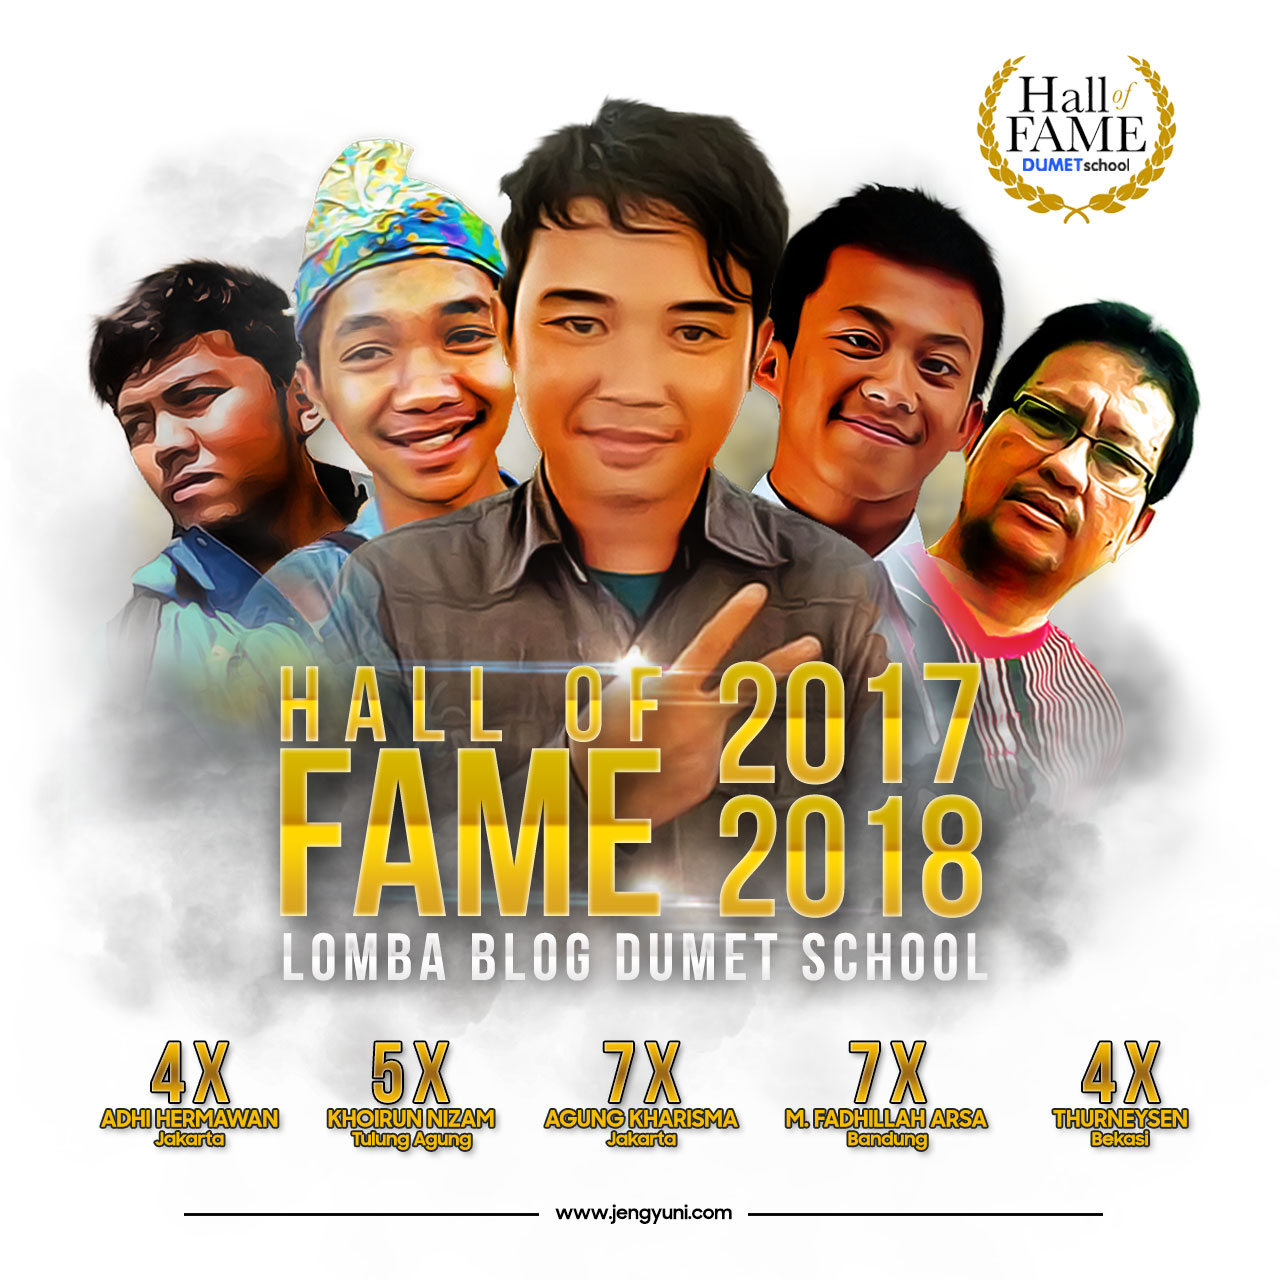 Hall of fame Dumet School